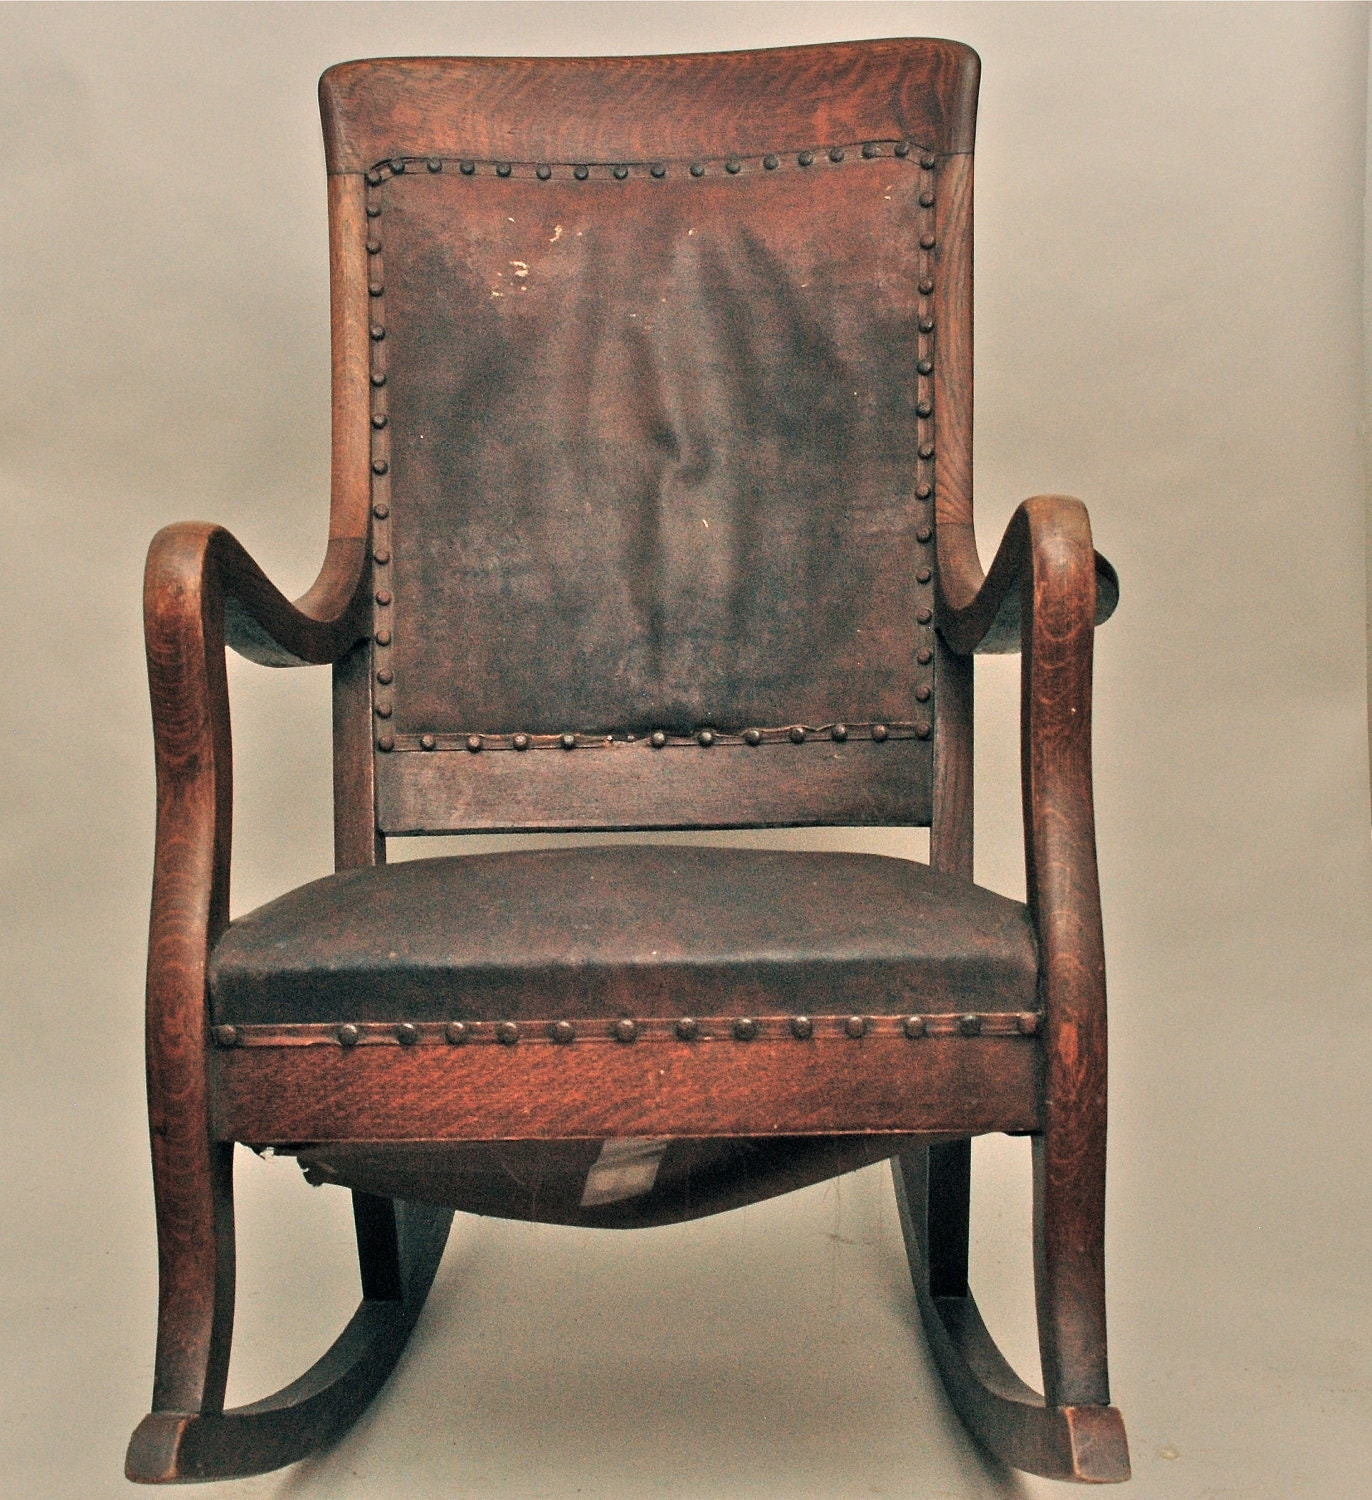 Antique Rocking Chair Antique High Back Oak Rocking Chair With Leather Seat And Back